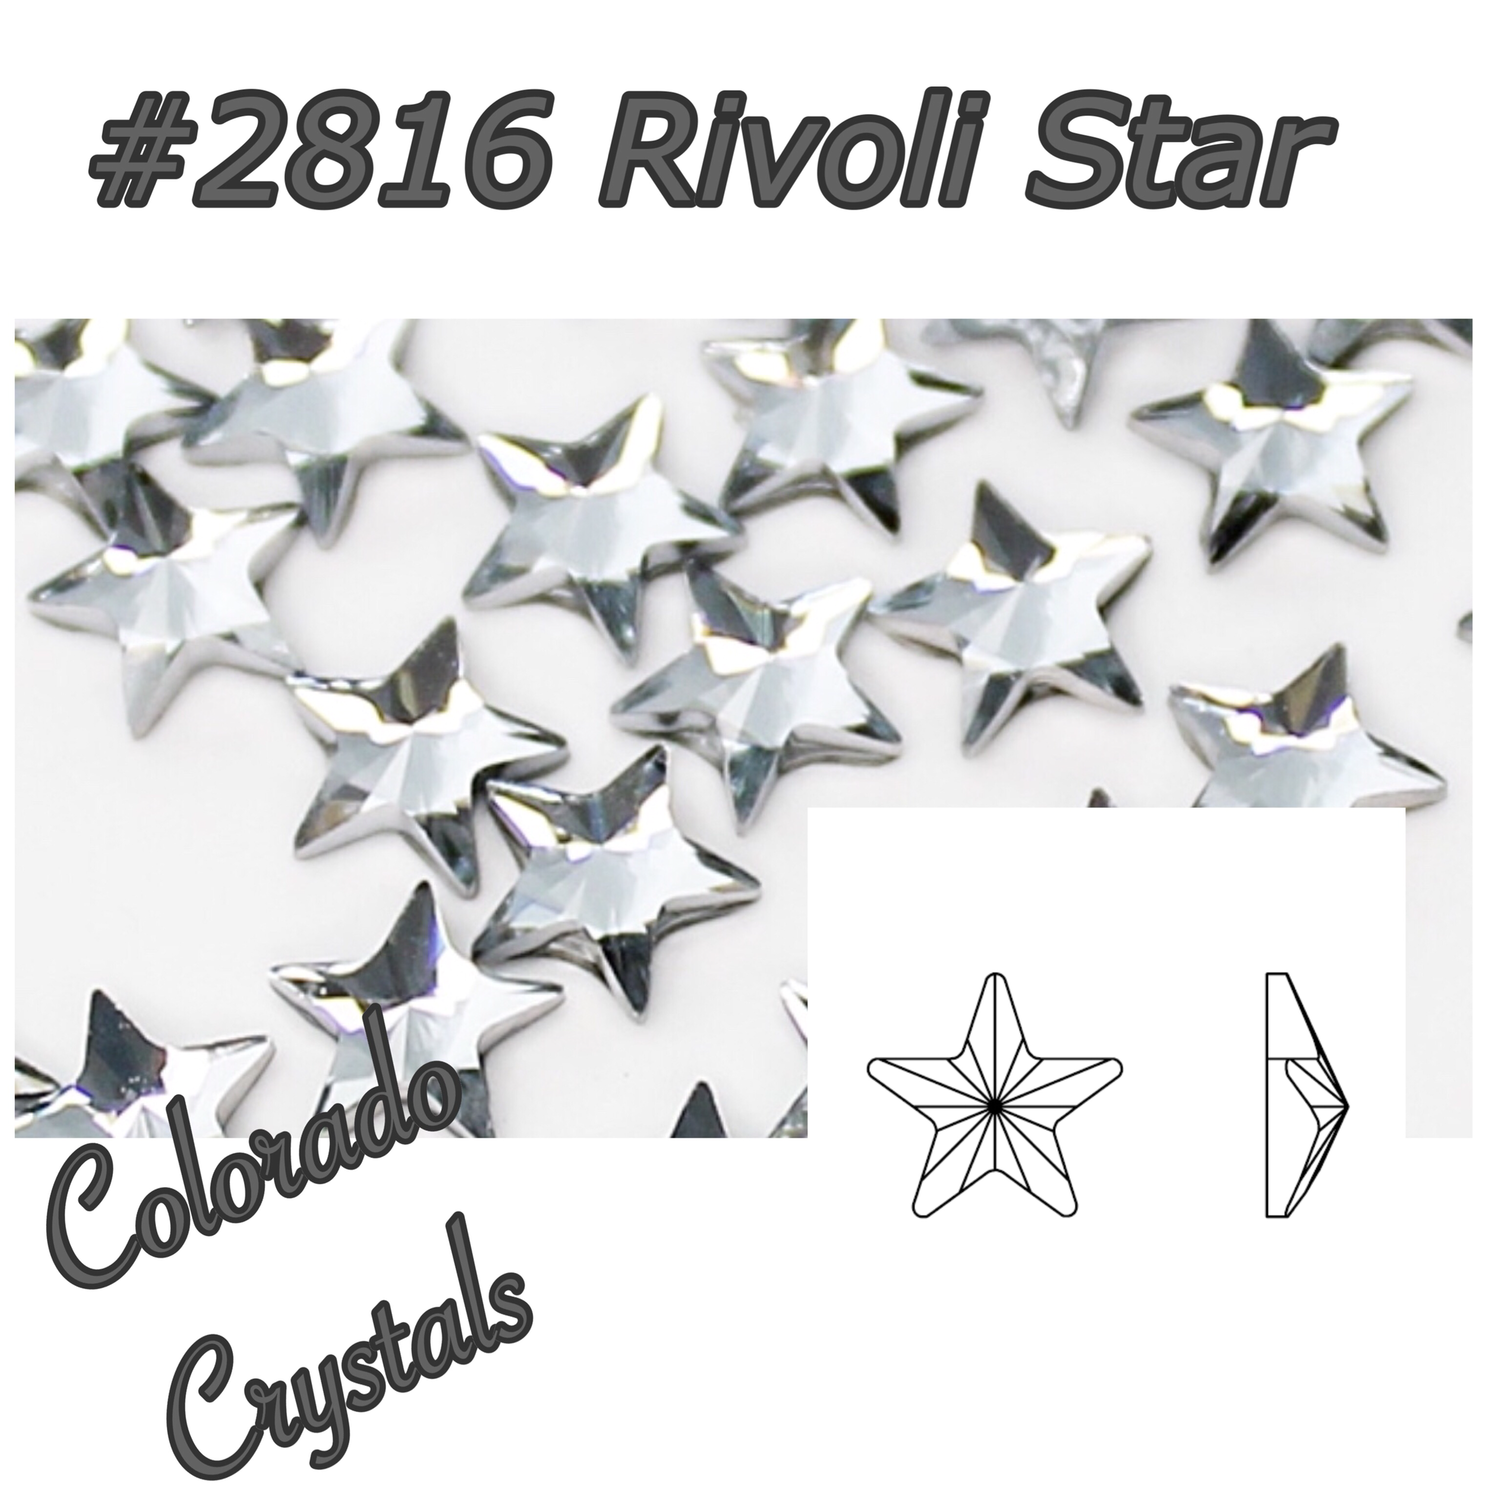 2816 Rivoli Star Swarovski Flat Back Crystal 5mm